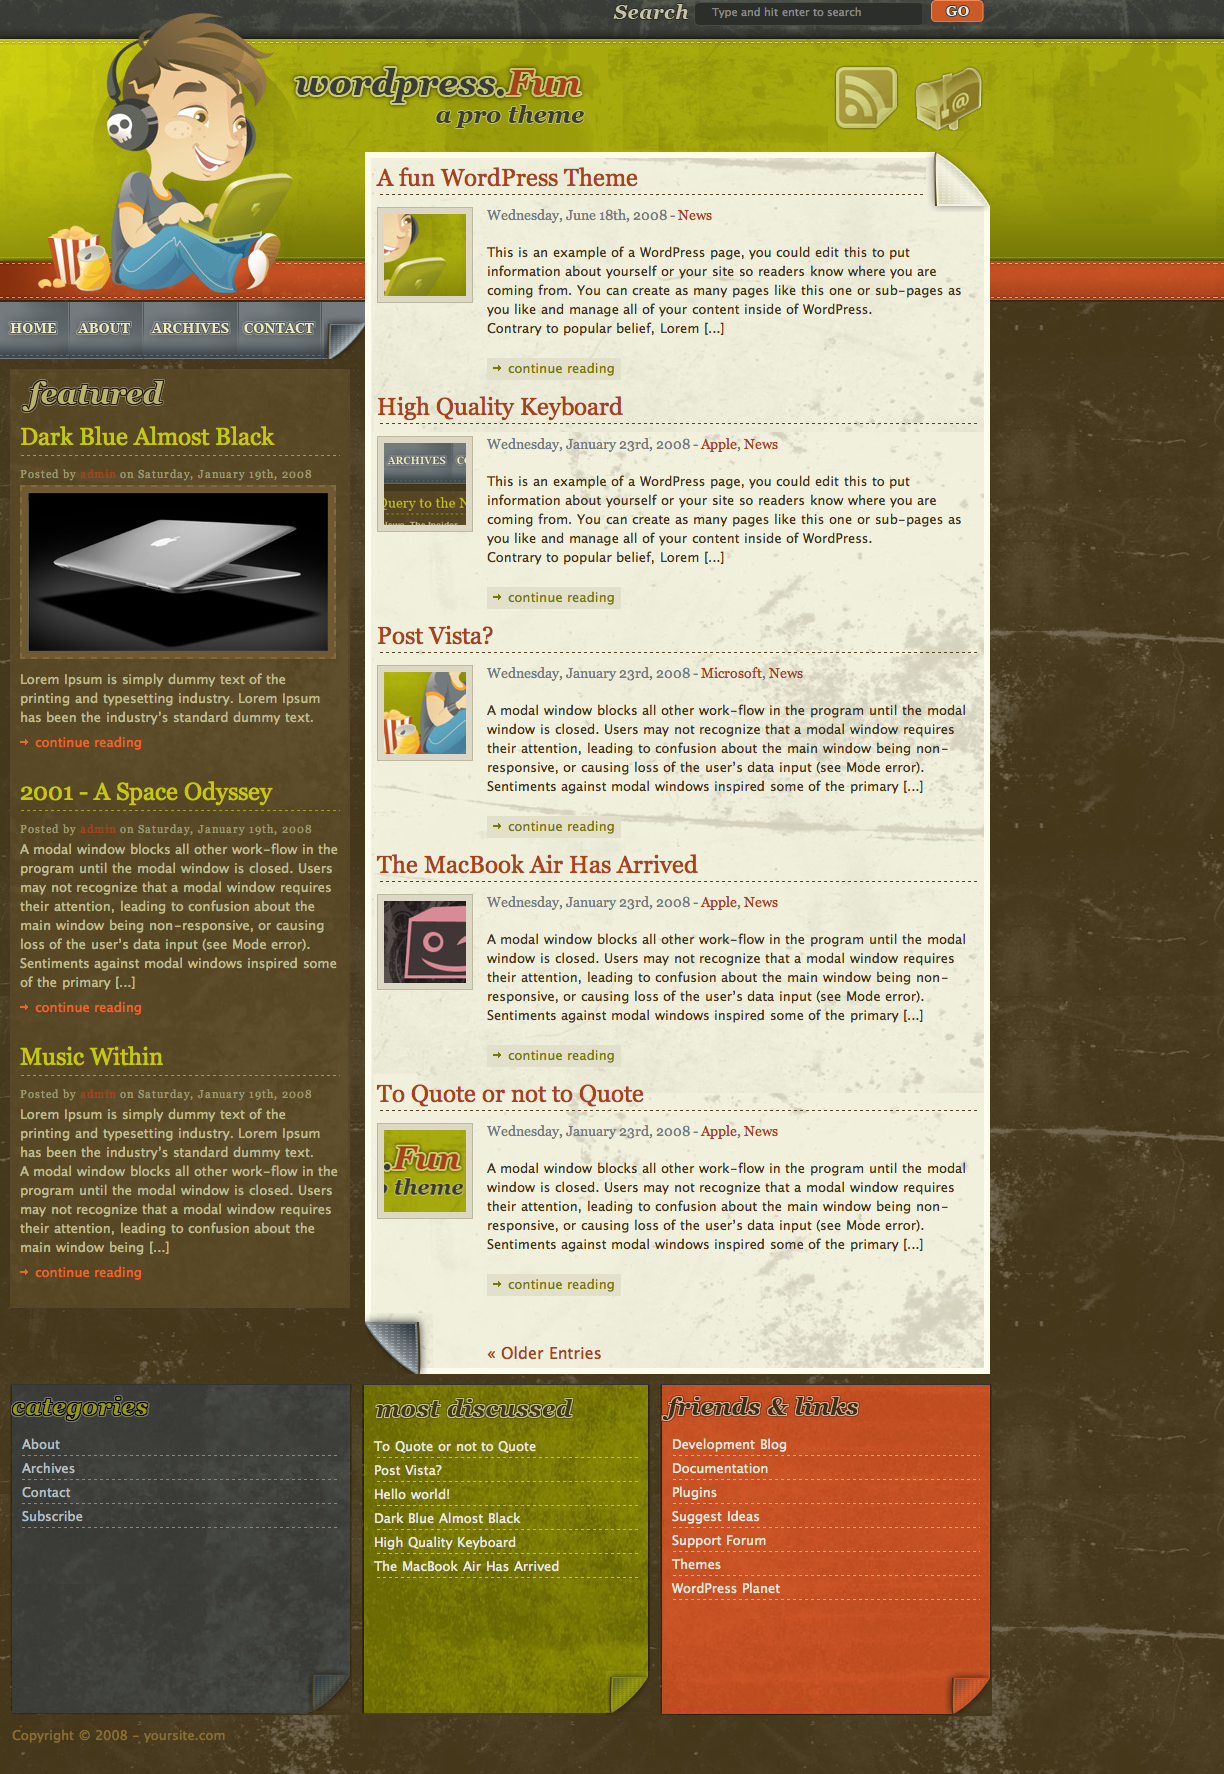 Wordpress theme wordpressfun